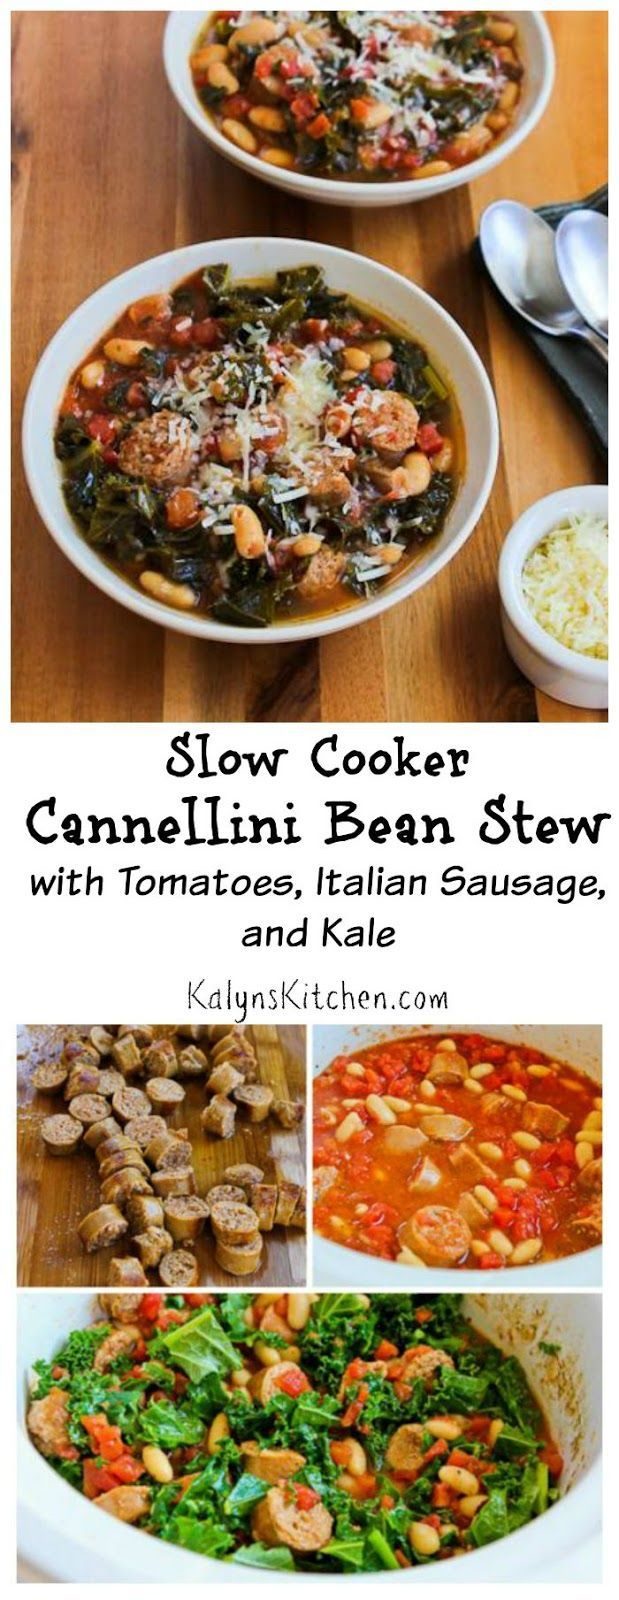 This Slow Cooker Cannellini Bean Stew with Tomatoes, Italian Sausage, and Kale is delicious and easy to make. I love to use spicy turkey Italian sausage in this recipe. [from KalynsKitchen.com]